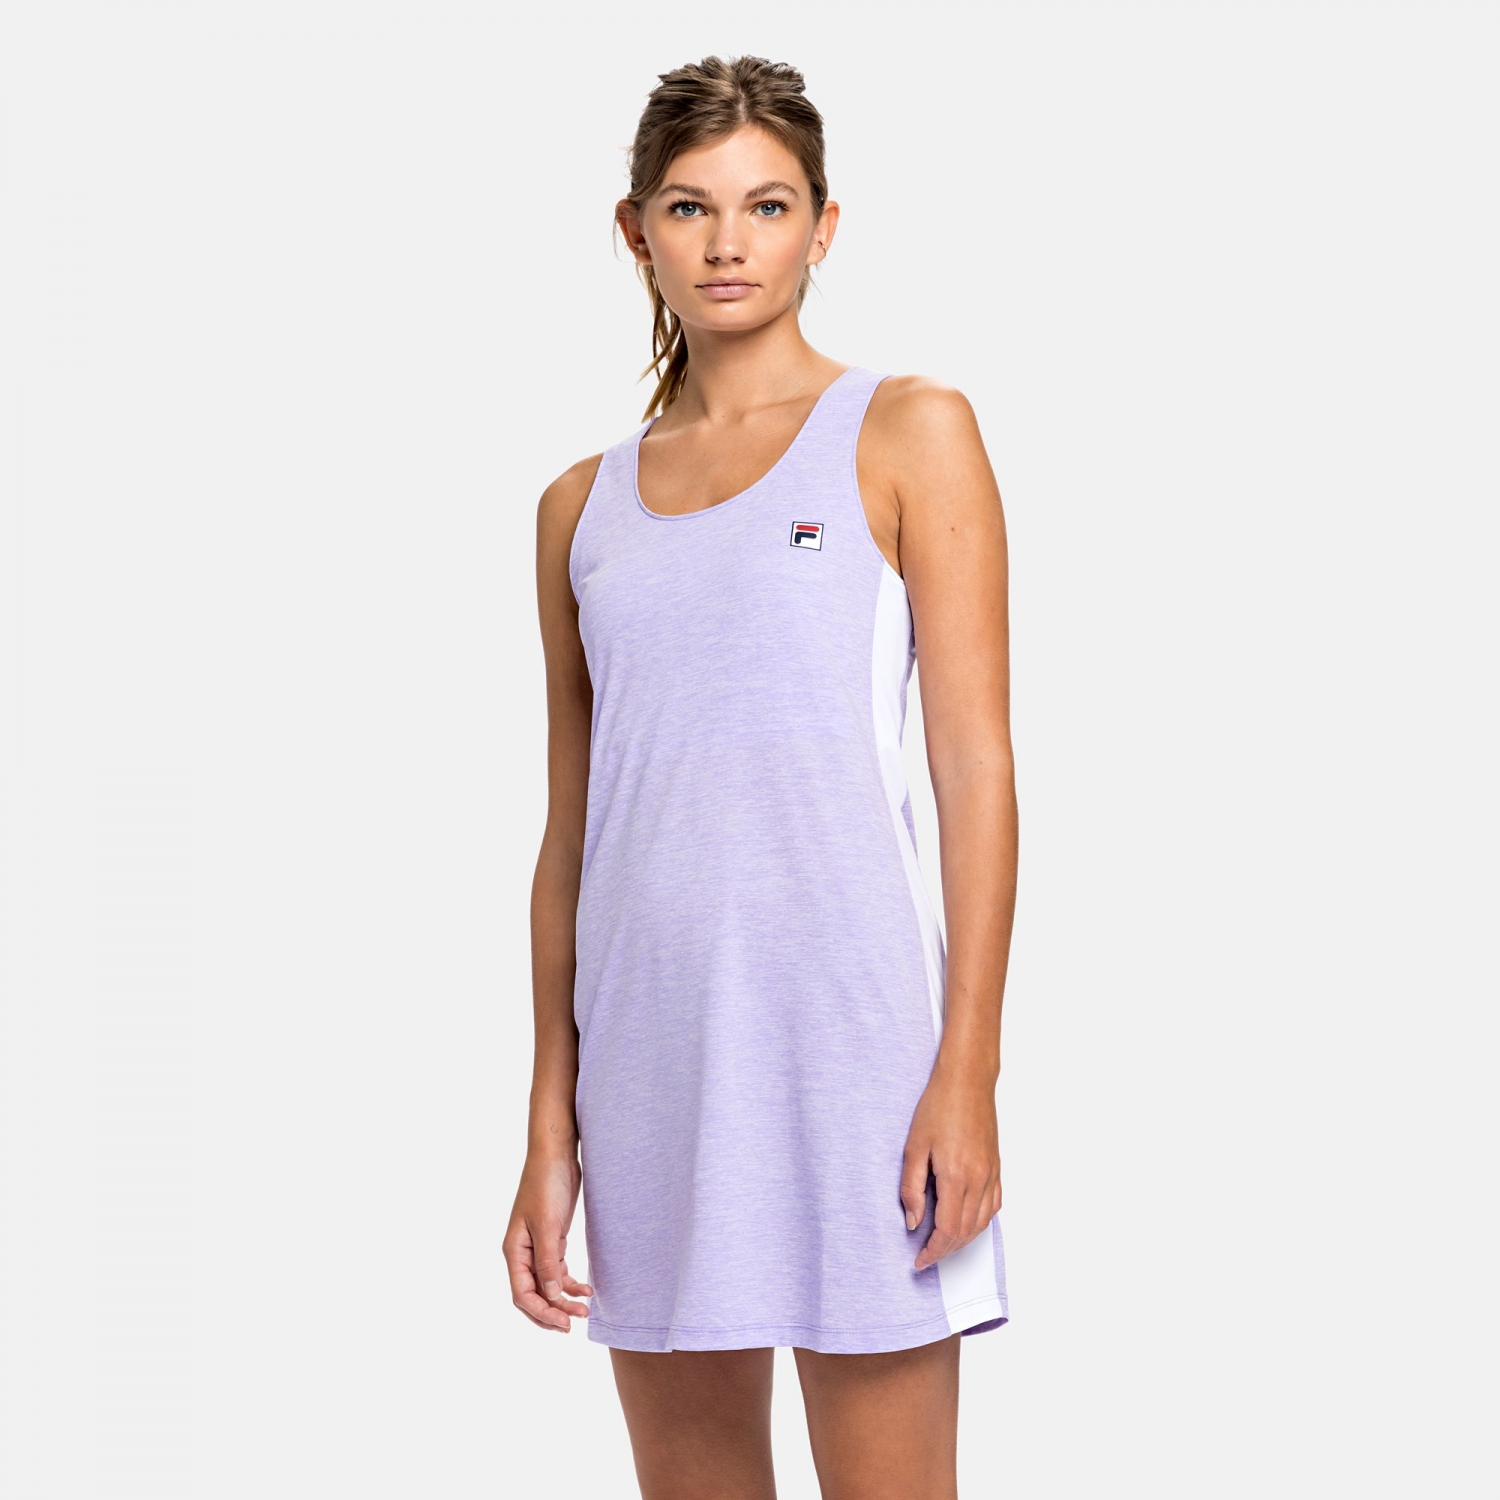 Fila Dress Yumi Bild 1